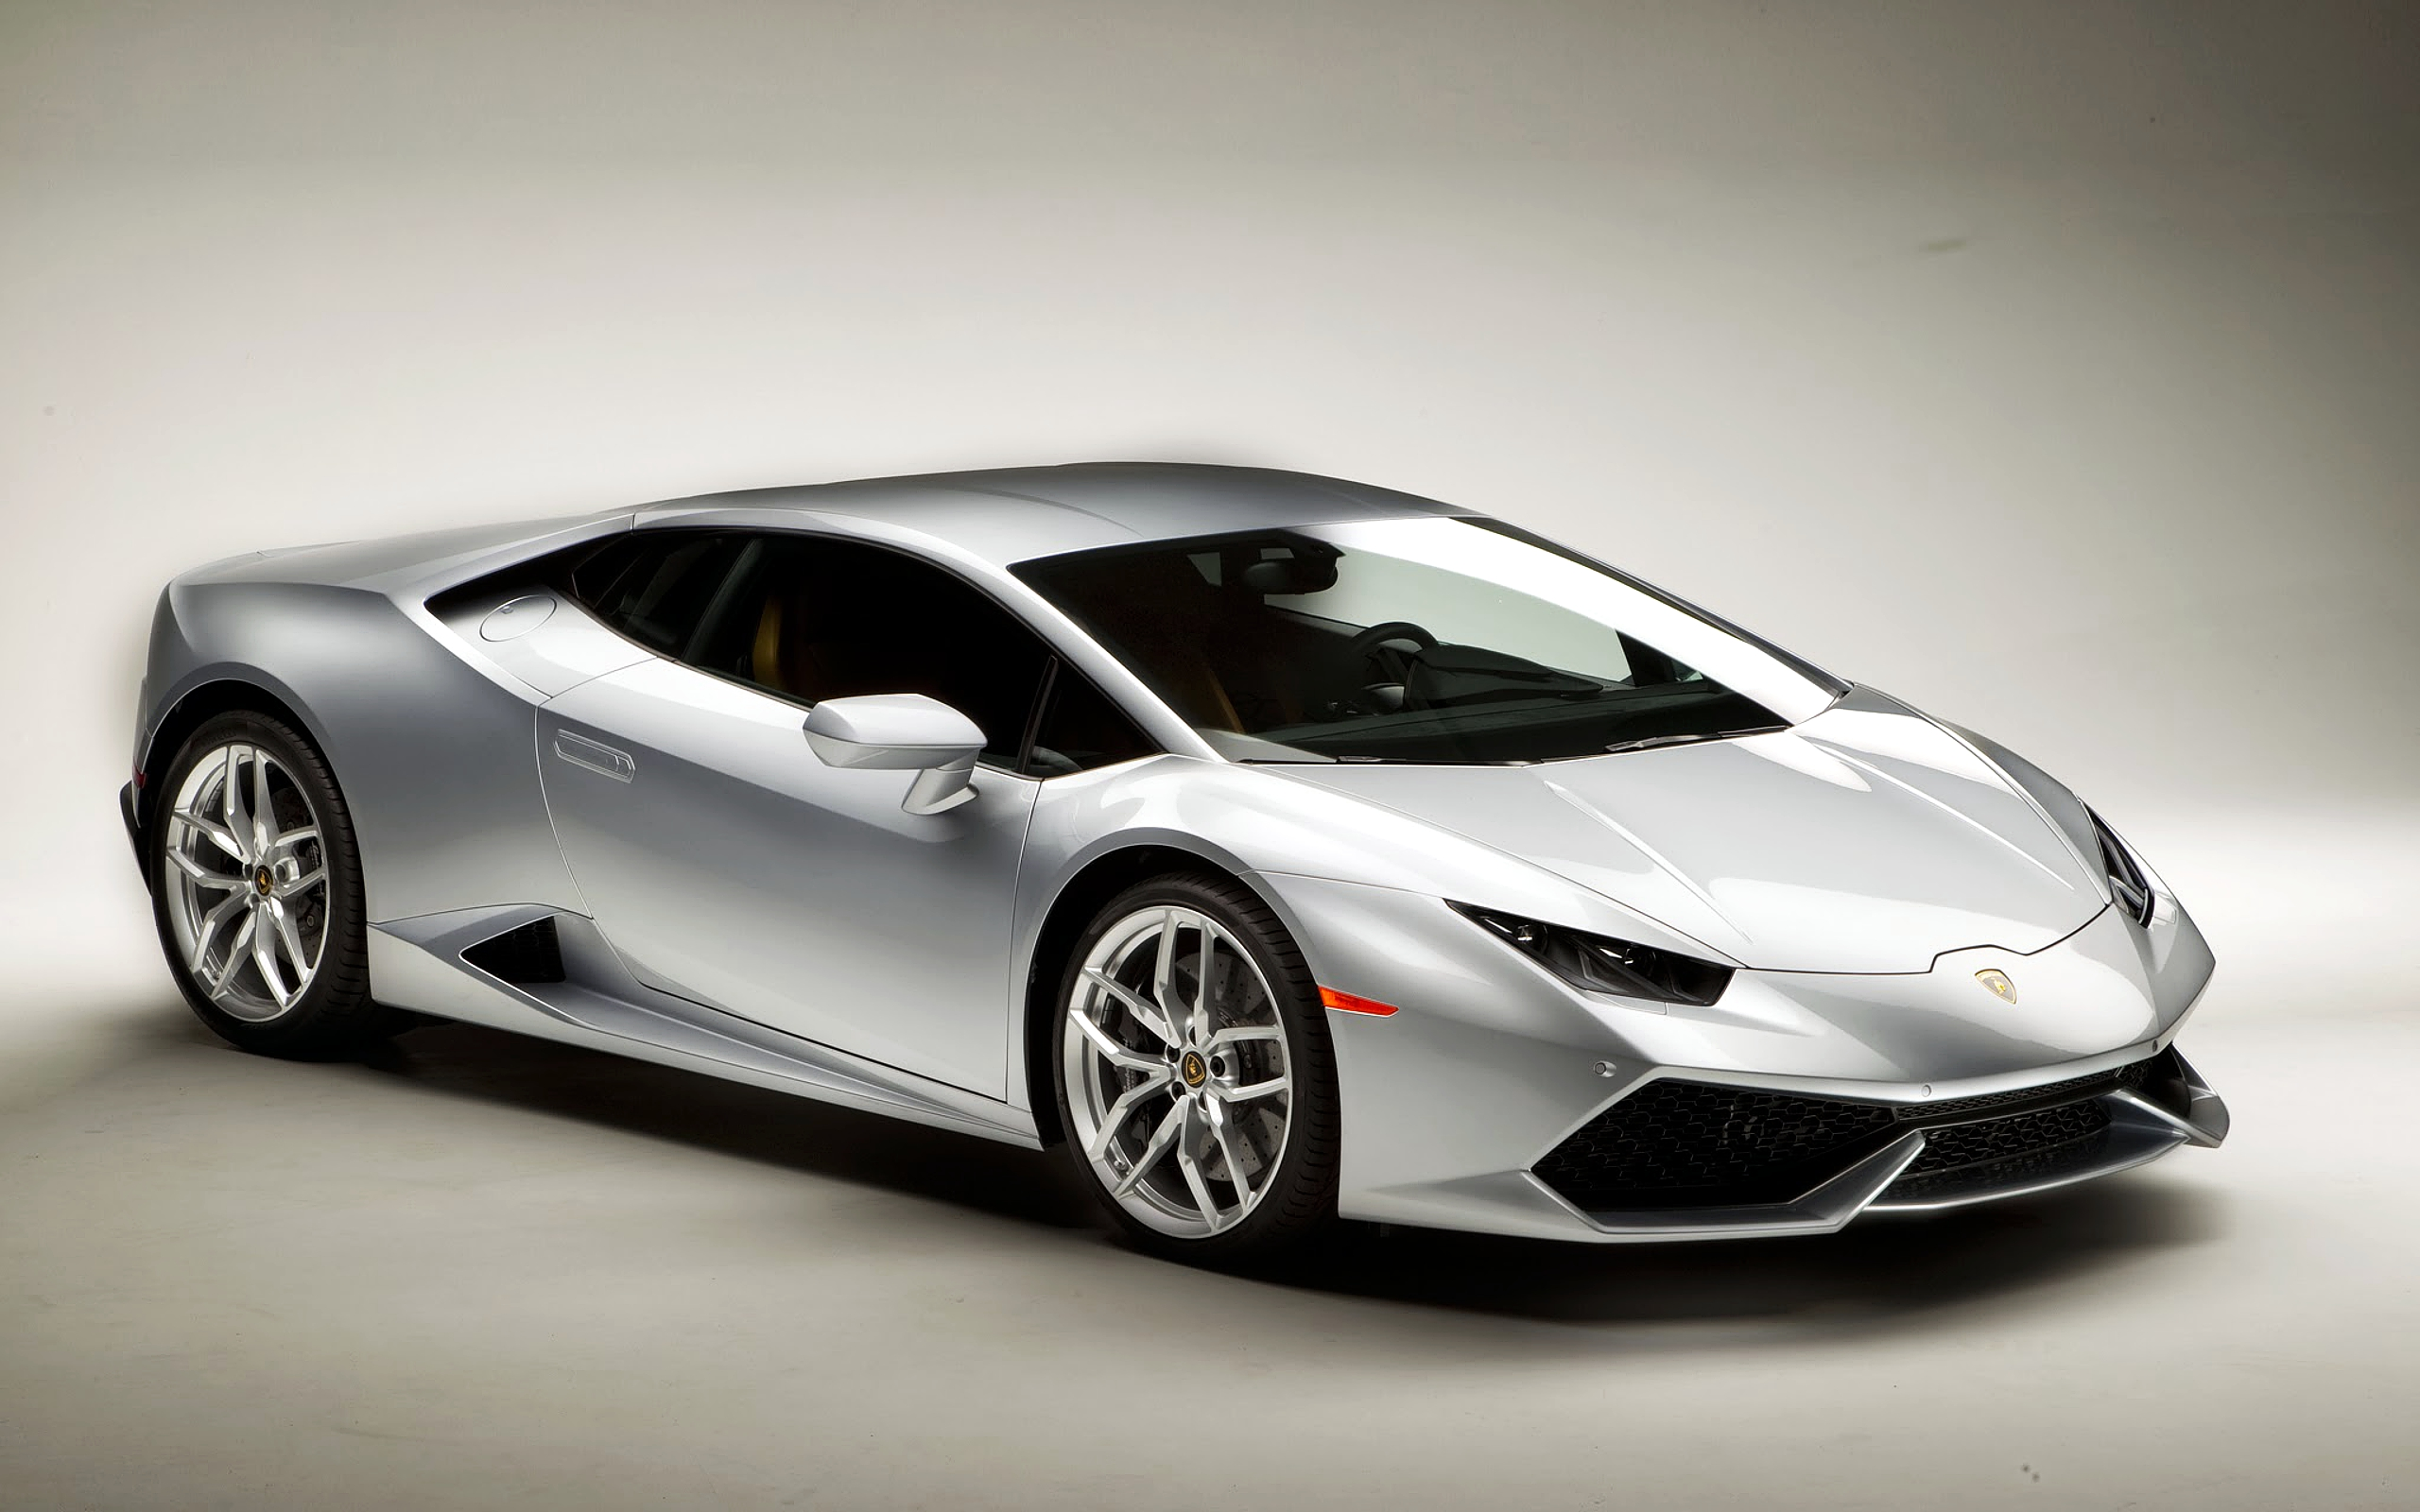 Lamborghini Huracan Silver Wallpaper Backgrounds